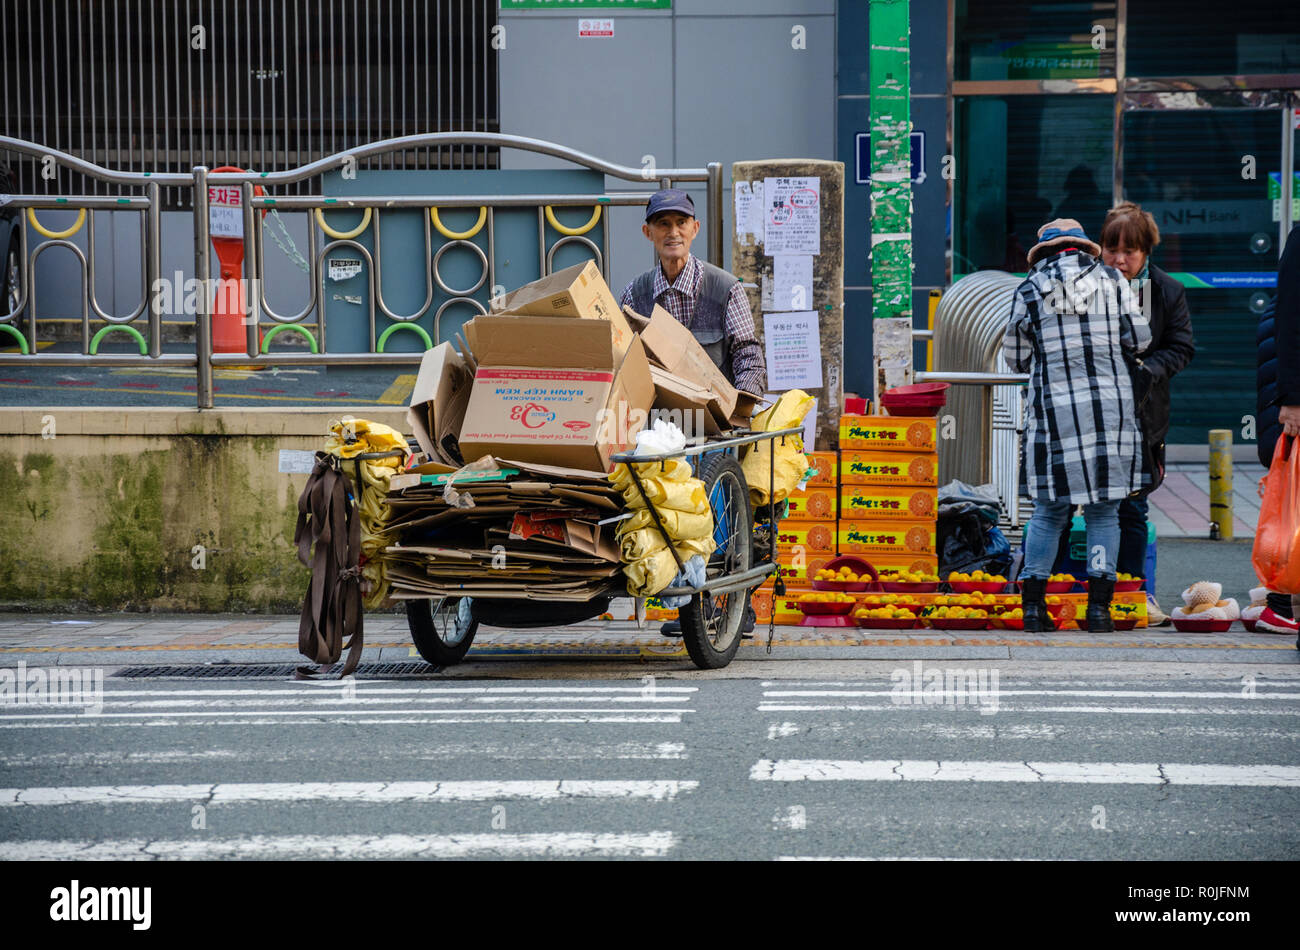 a-man-pushes-a-cart-across-a-pedestrian-which-is-loaded-with-old-cardboard-boxes-R0JFNM.jpg